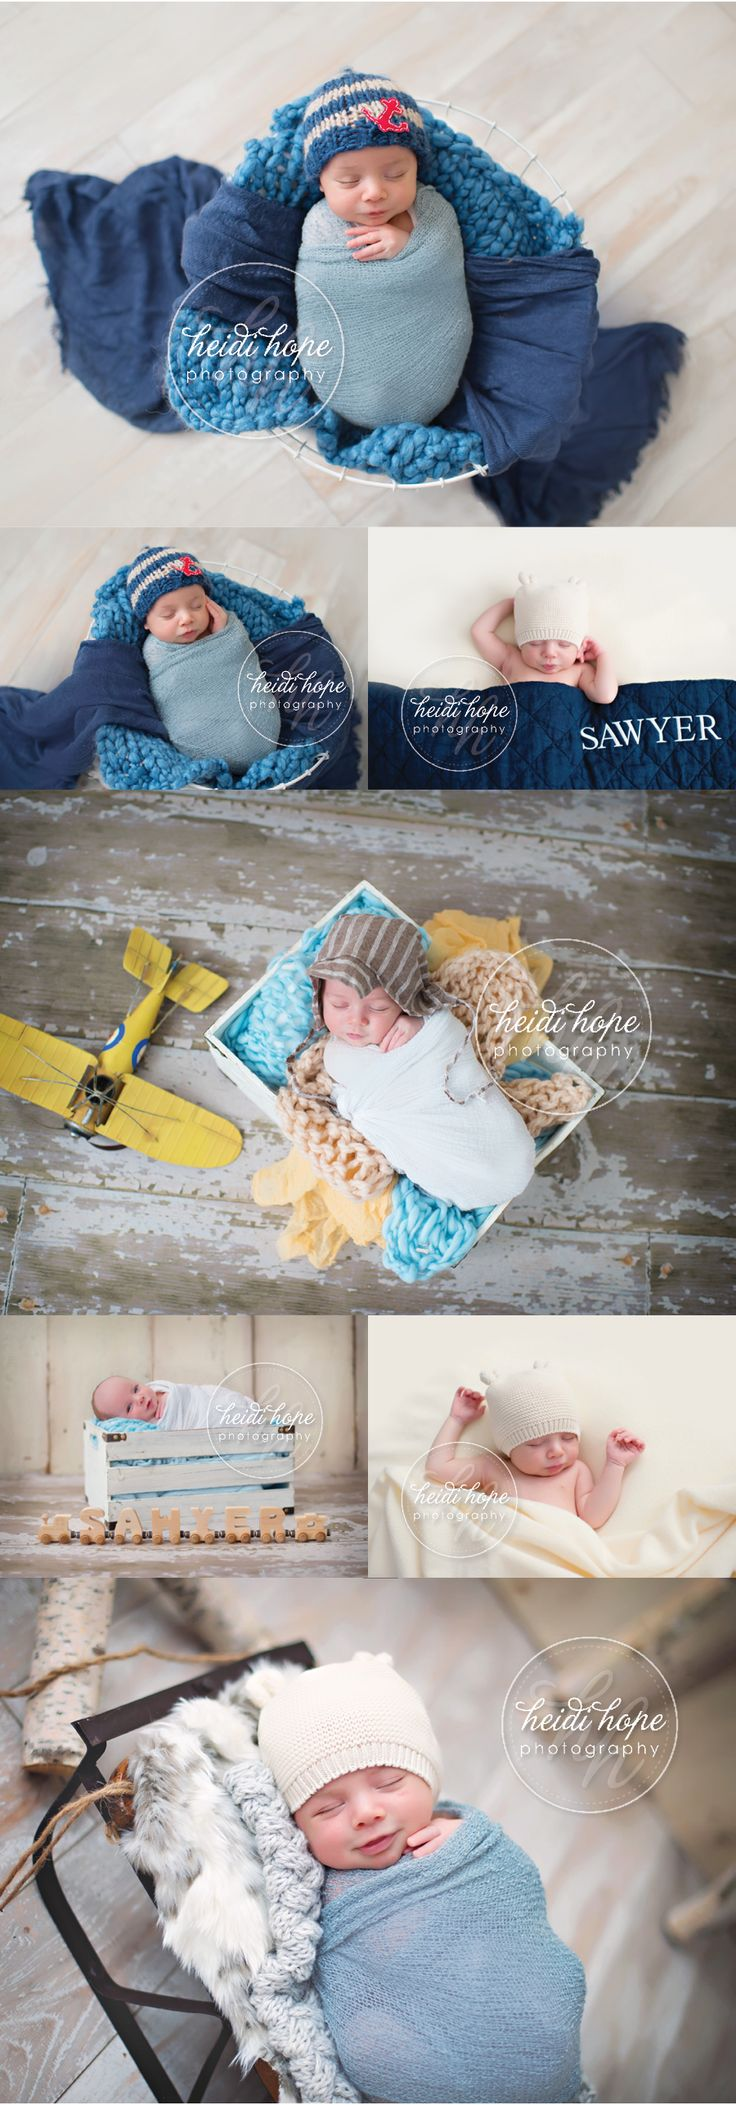 One Month Old Baby S, a classic little star newborn session. (Heidi Hope…